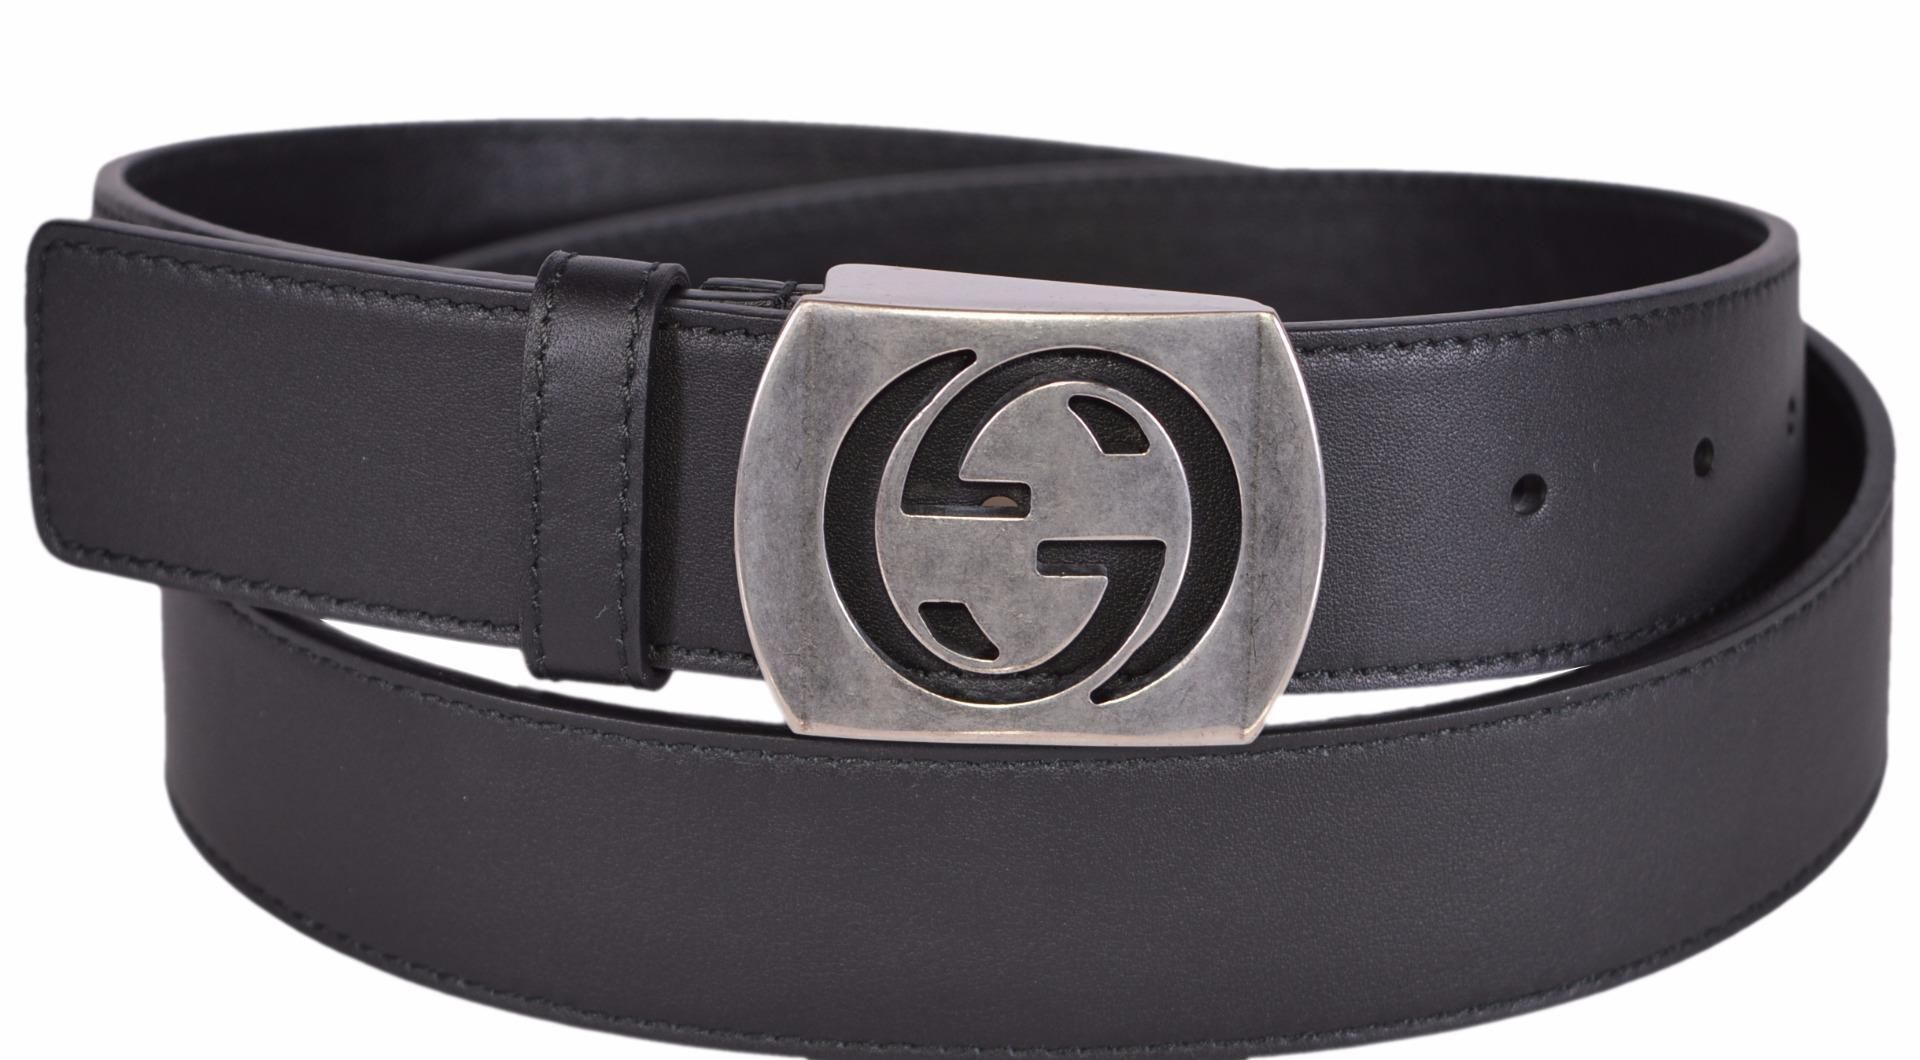 fd78cc3c676 New Gucci Men s 387031 Black Leather Cut Out Palladium GG Belt 42 105. Free  shipping and guaranteed authenticity on New Gucci Men s 387031 Black  Leather Cut ...